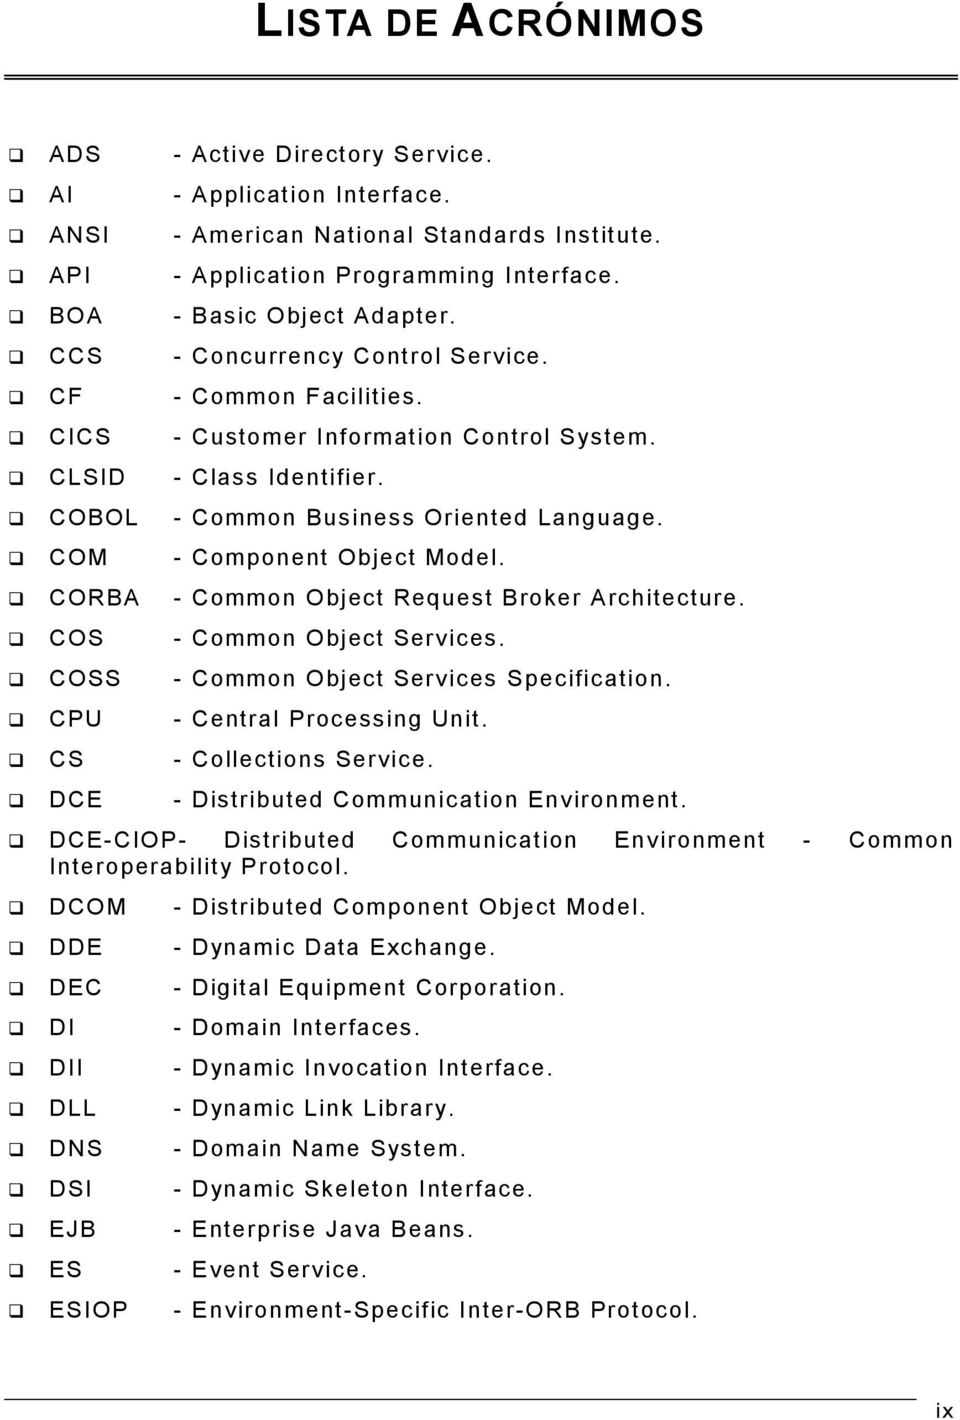 COM - Component Object Model. CORBA - Common Object Request Broker Architecture. COS - Common Object Services. COSS - Common Object Services Specification. CPU - Central Processing Unit.